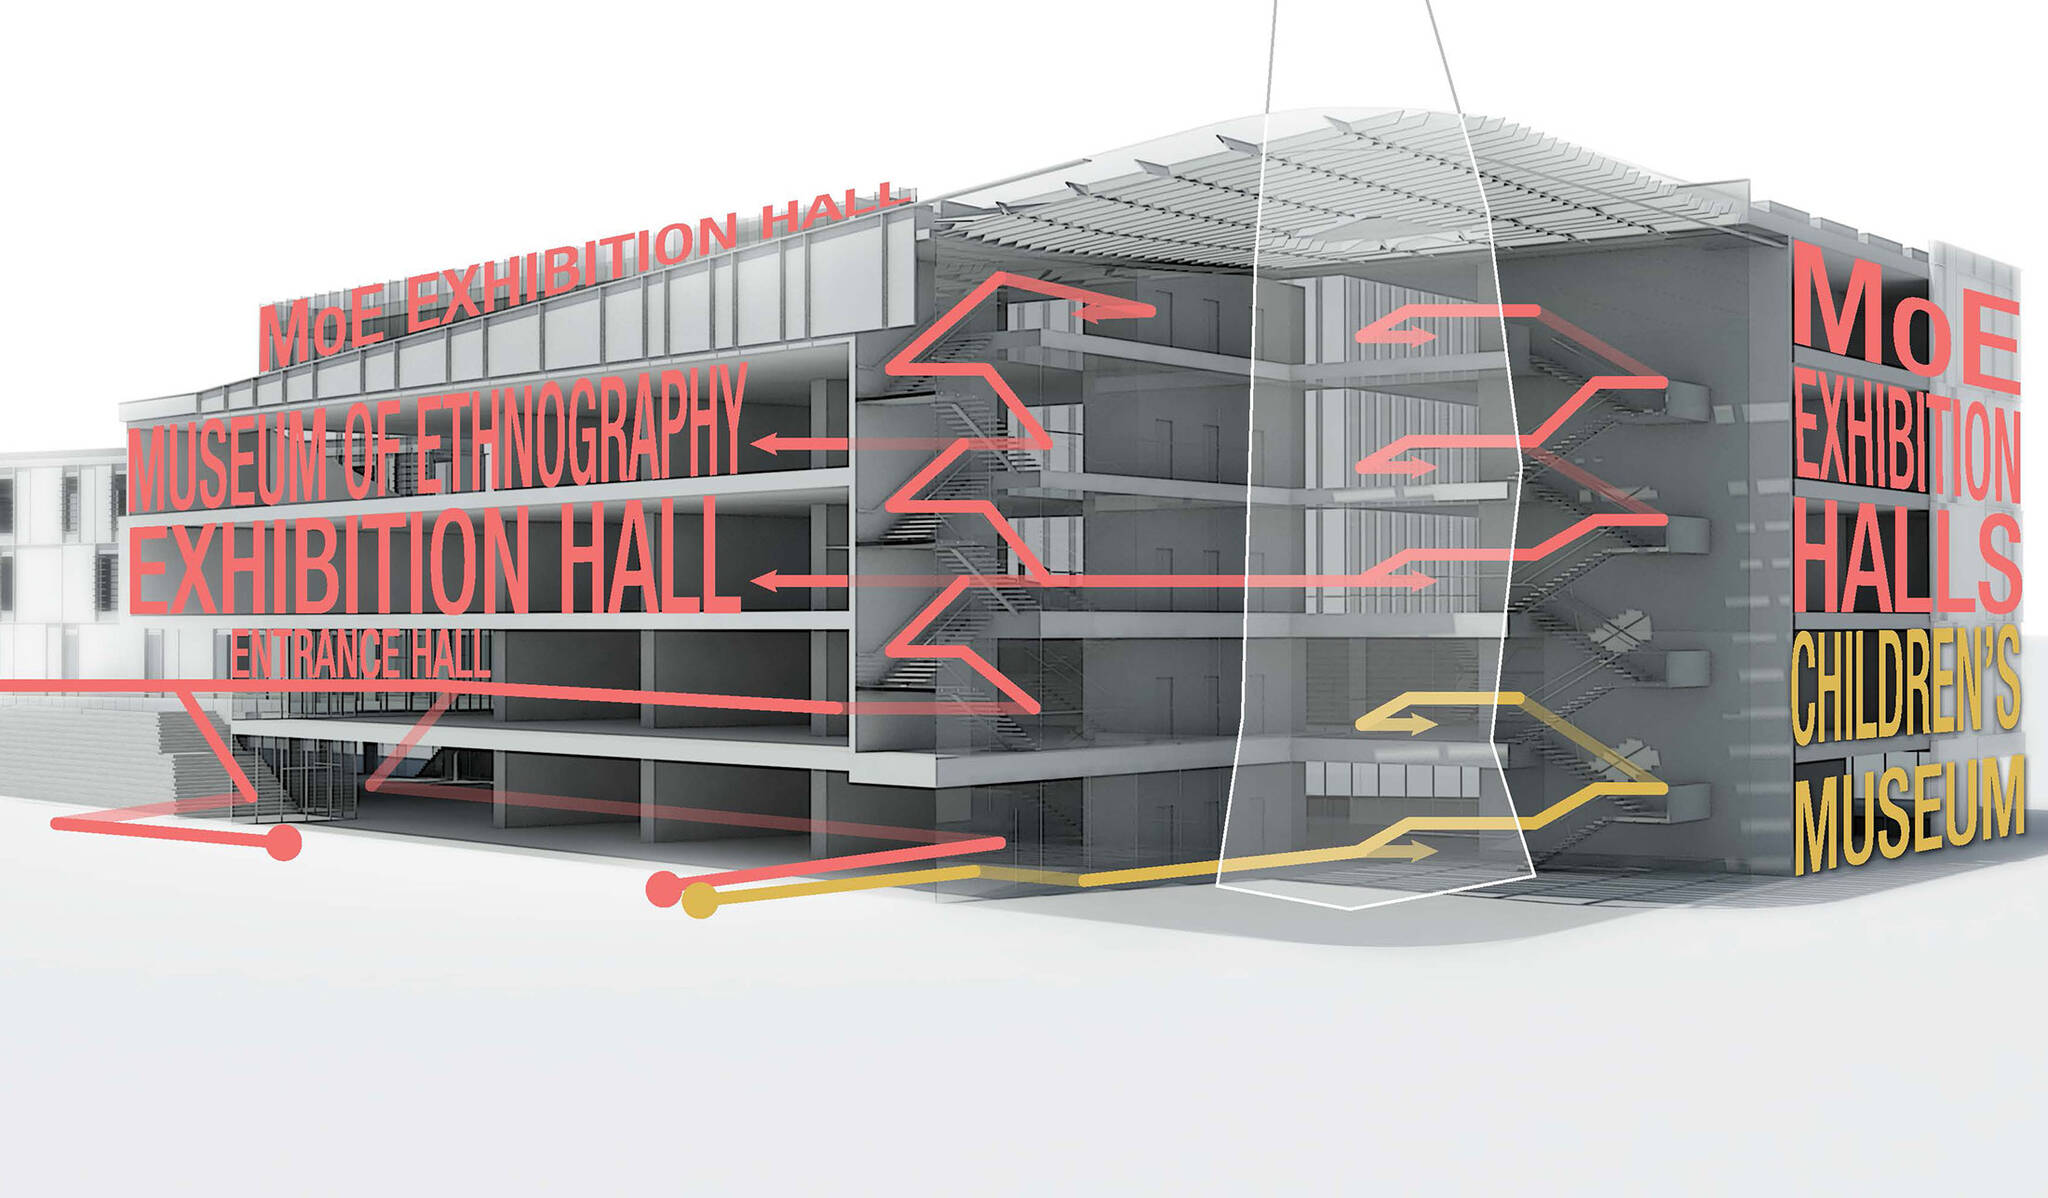 Circulation diagram of the Museum of Etnography project located in Budapest, Hungary designed by the architecture studio Danny Forster & Architecture